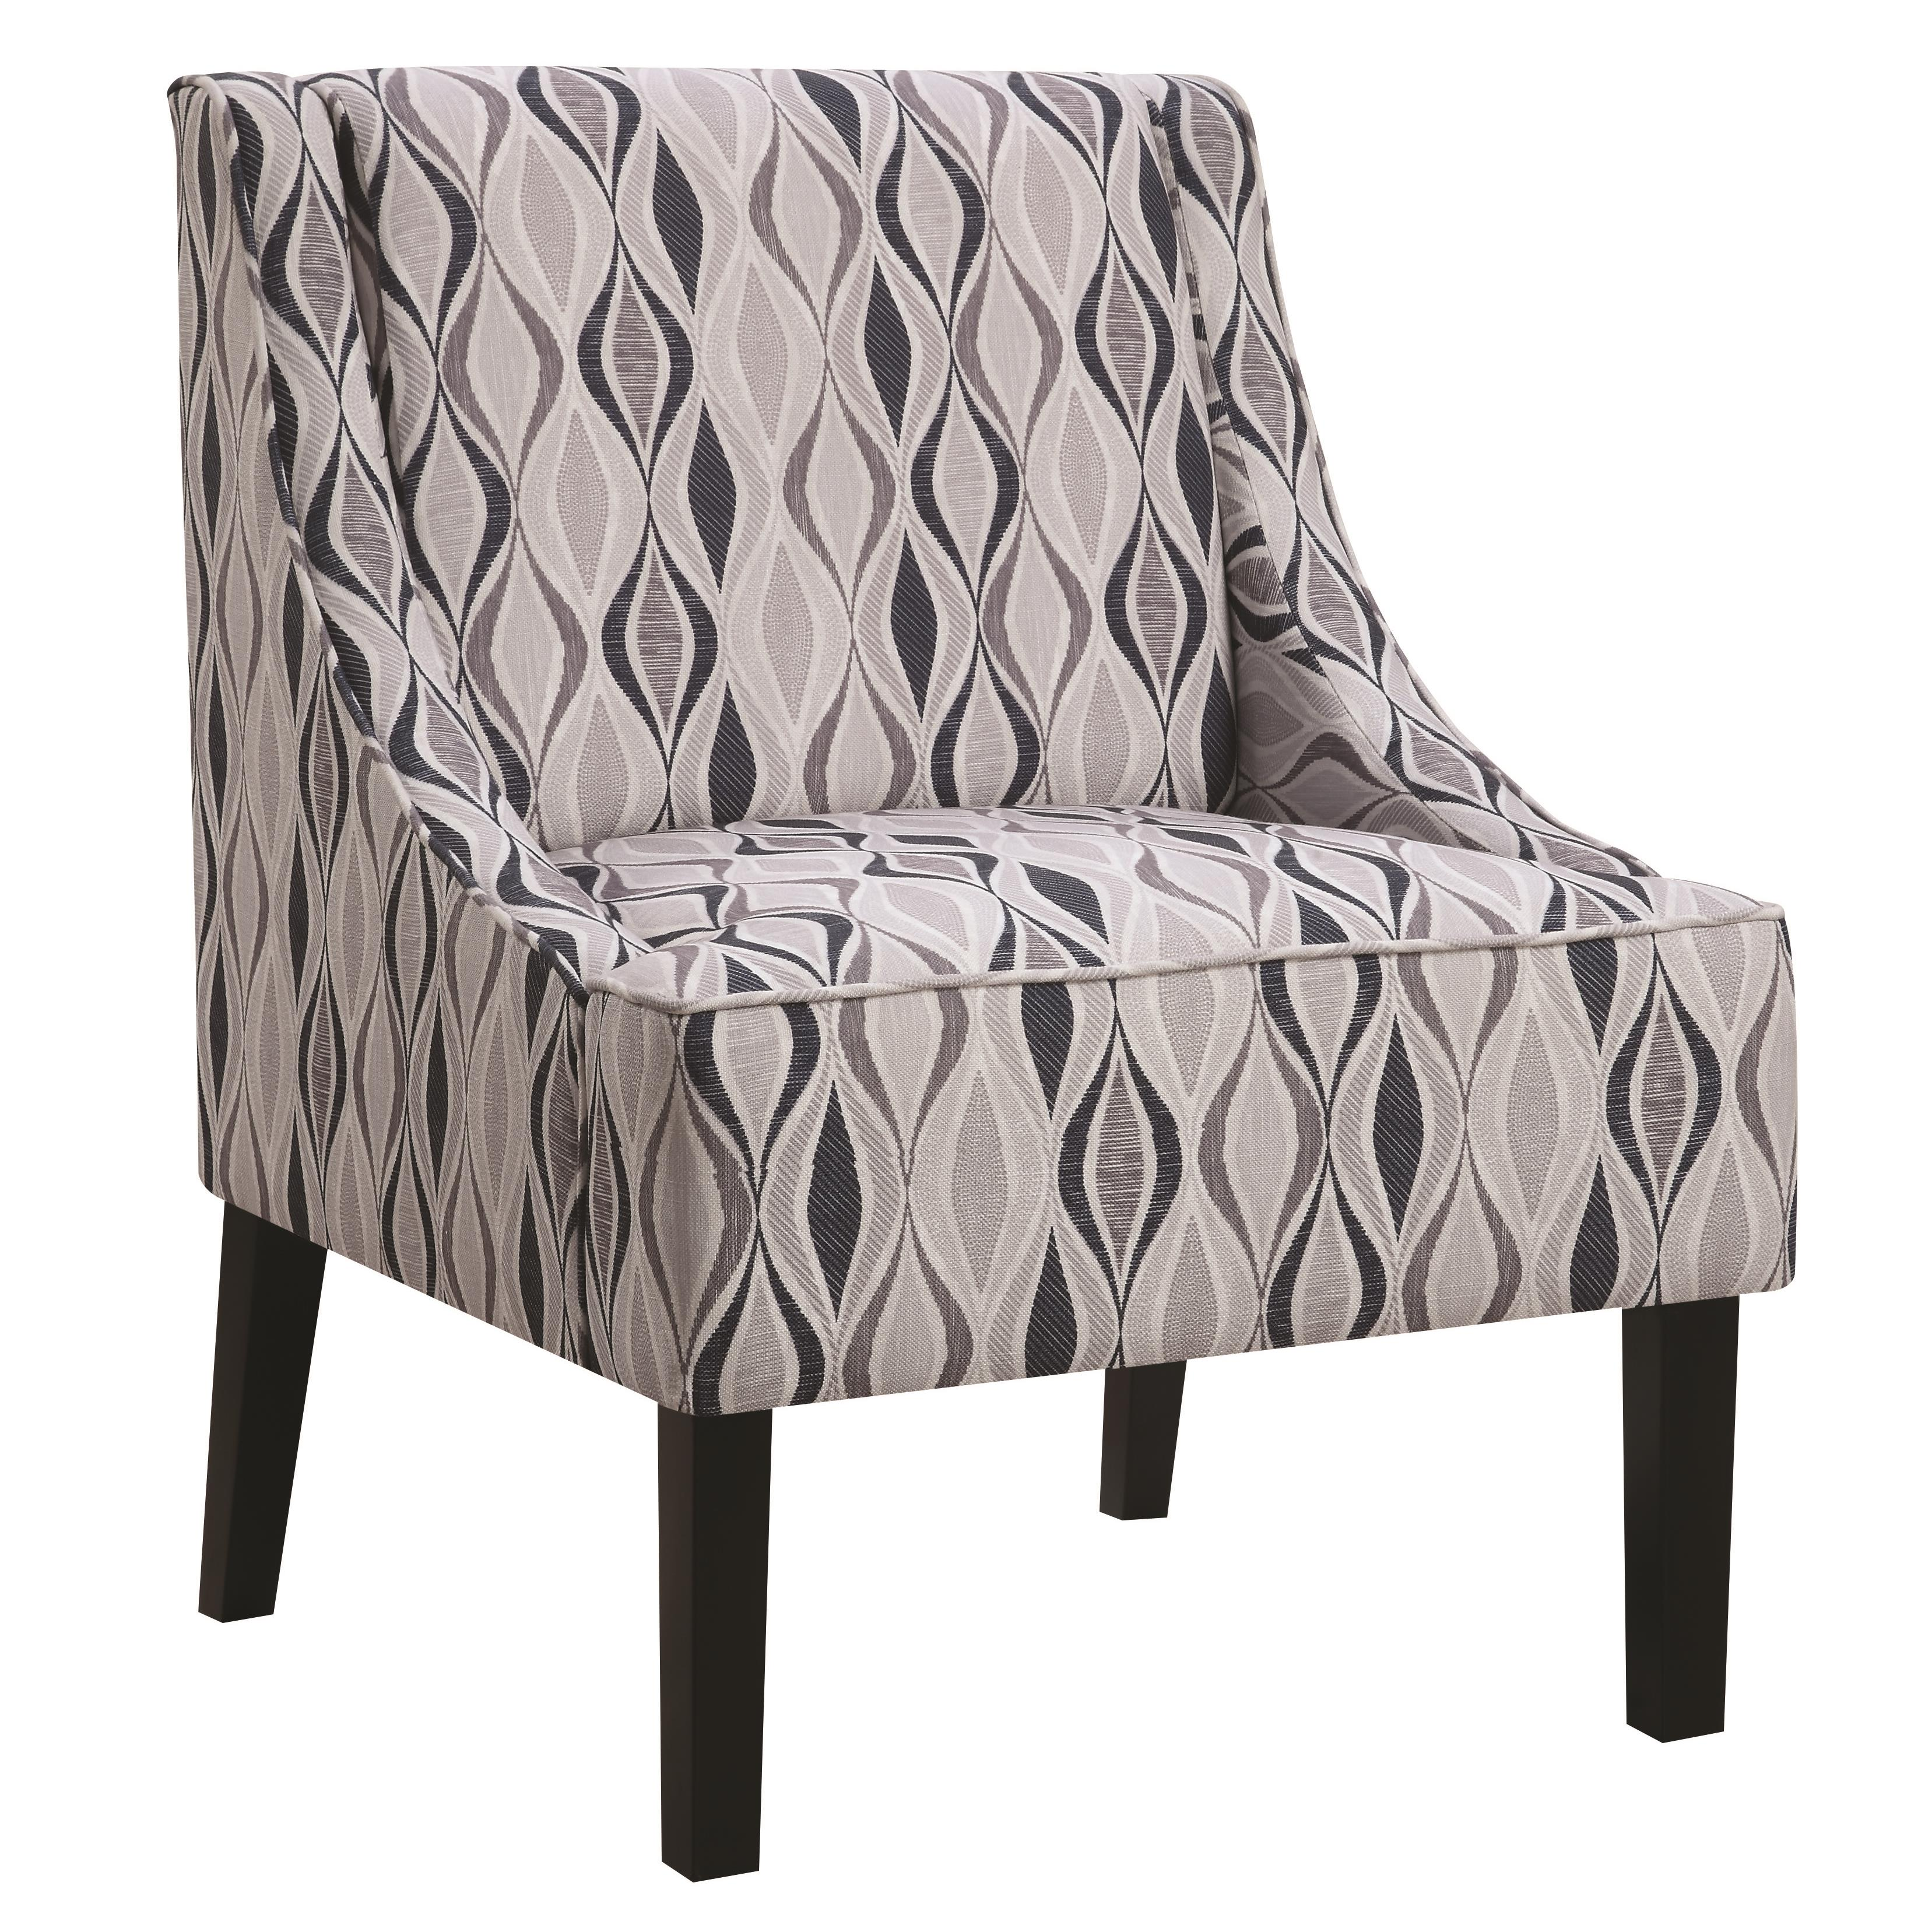 Coaster Accent Seating Accent Chair - Item Number: 902603